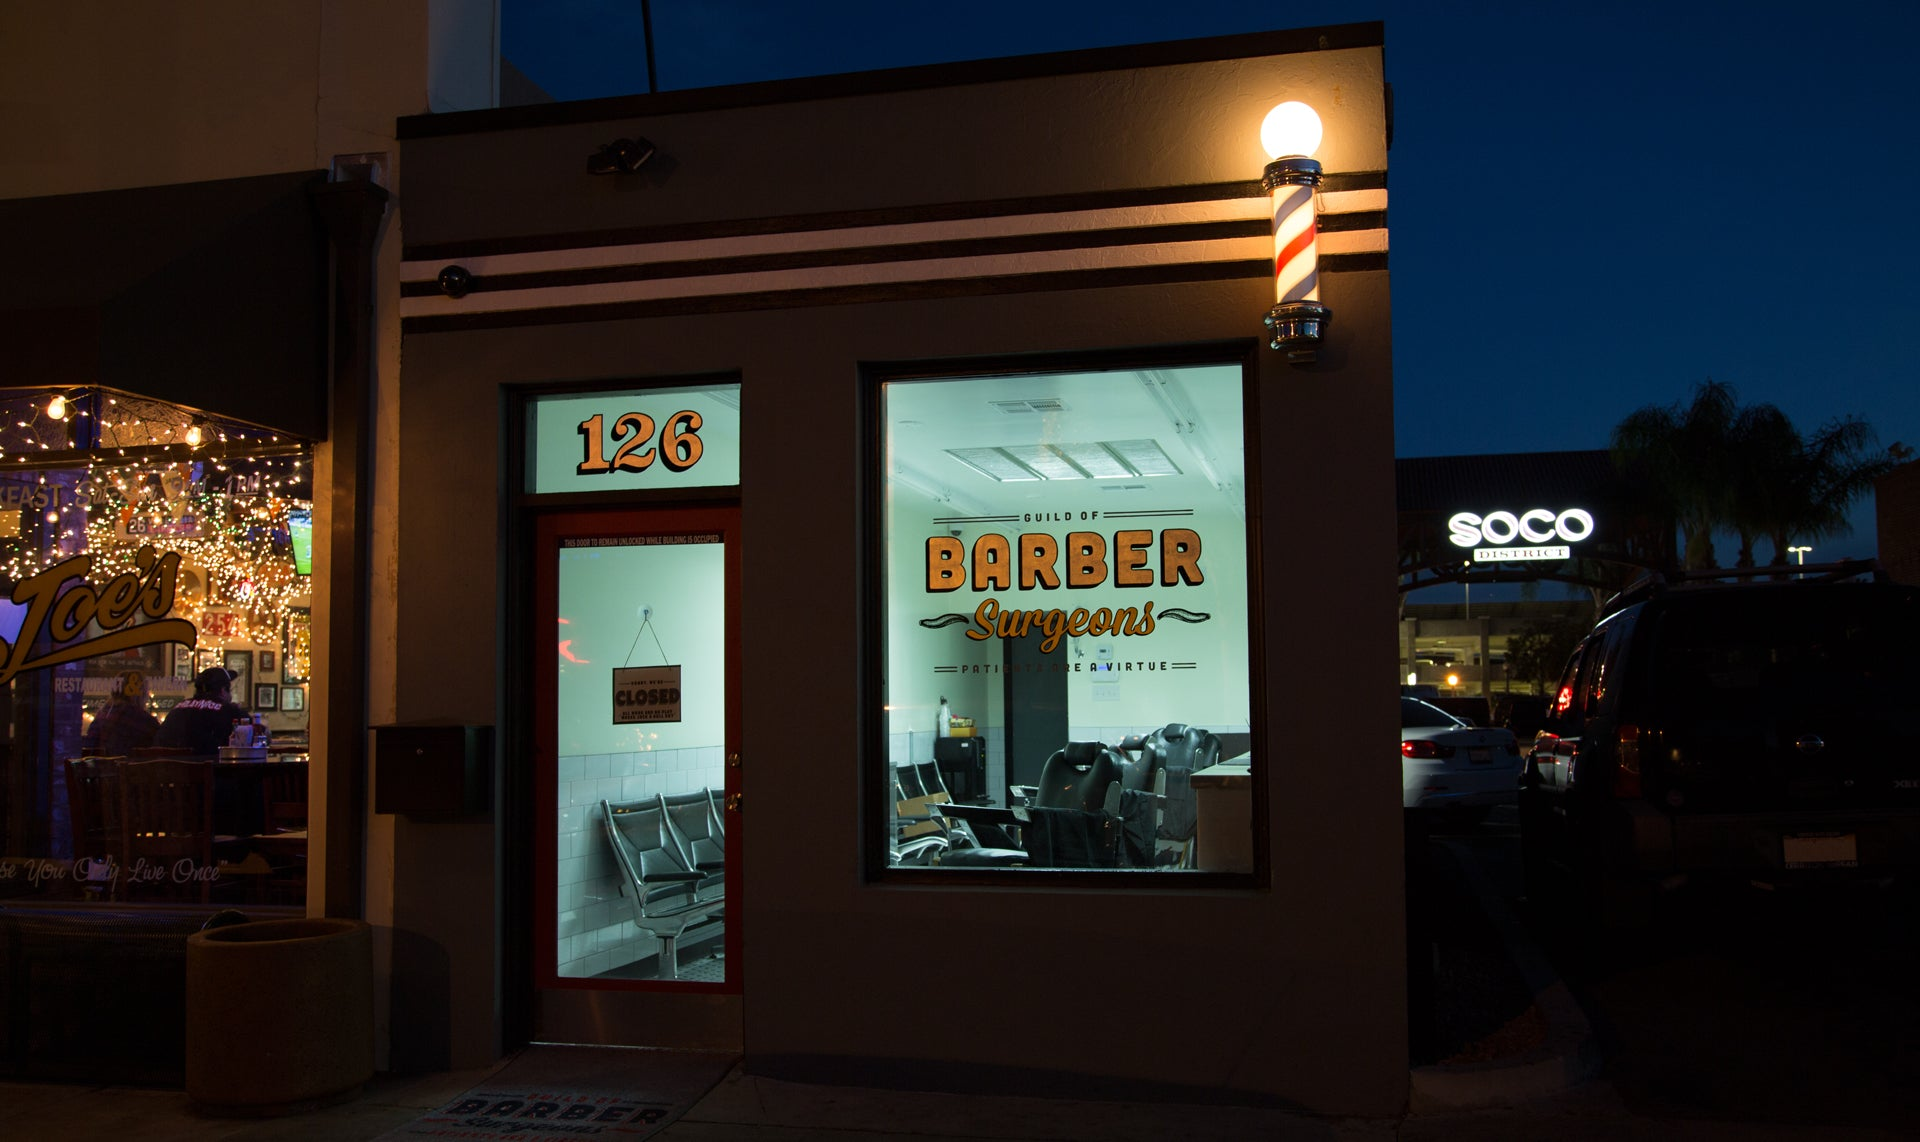 Barber Surgeons located in Fullerton's SOCO District